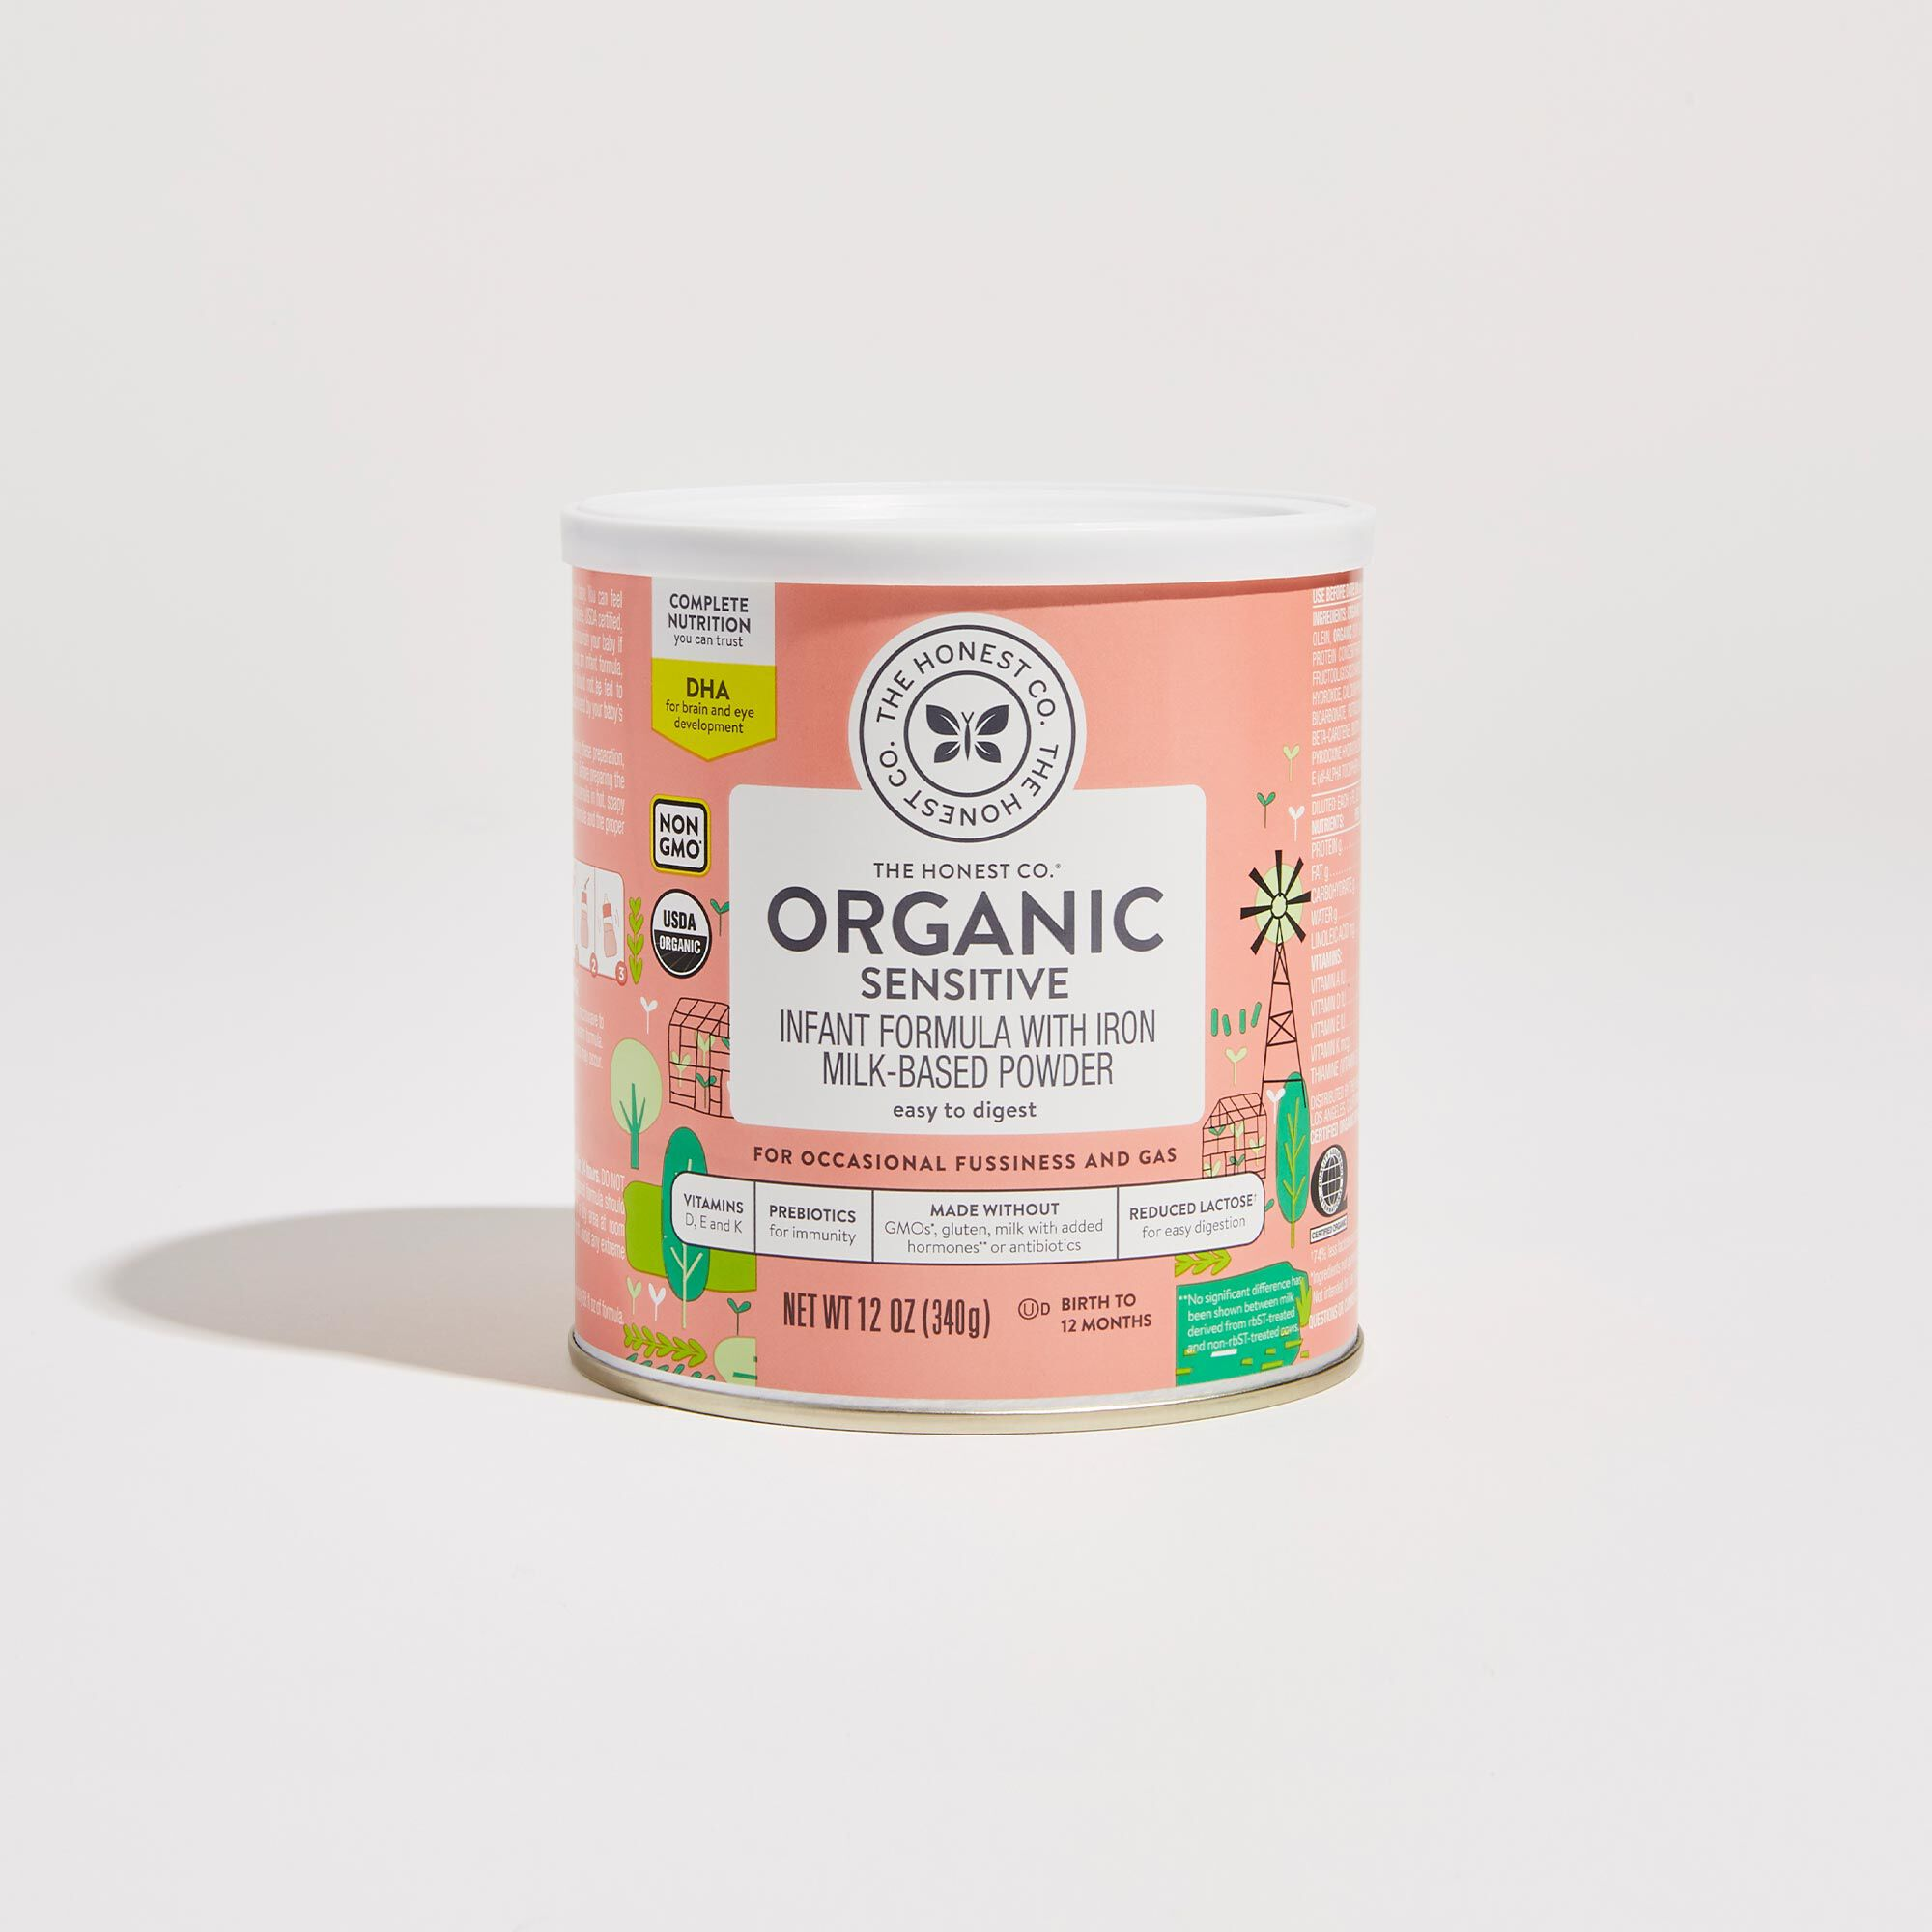 12 ounce Organic Sensitive Infant Formula Front of Container